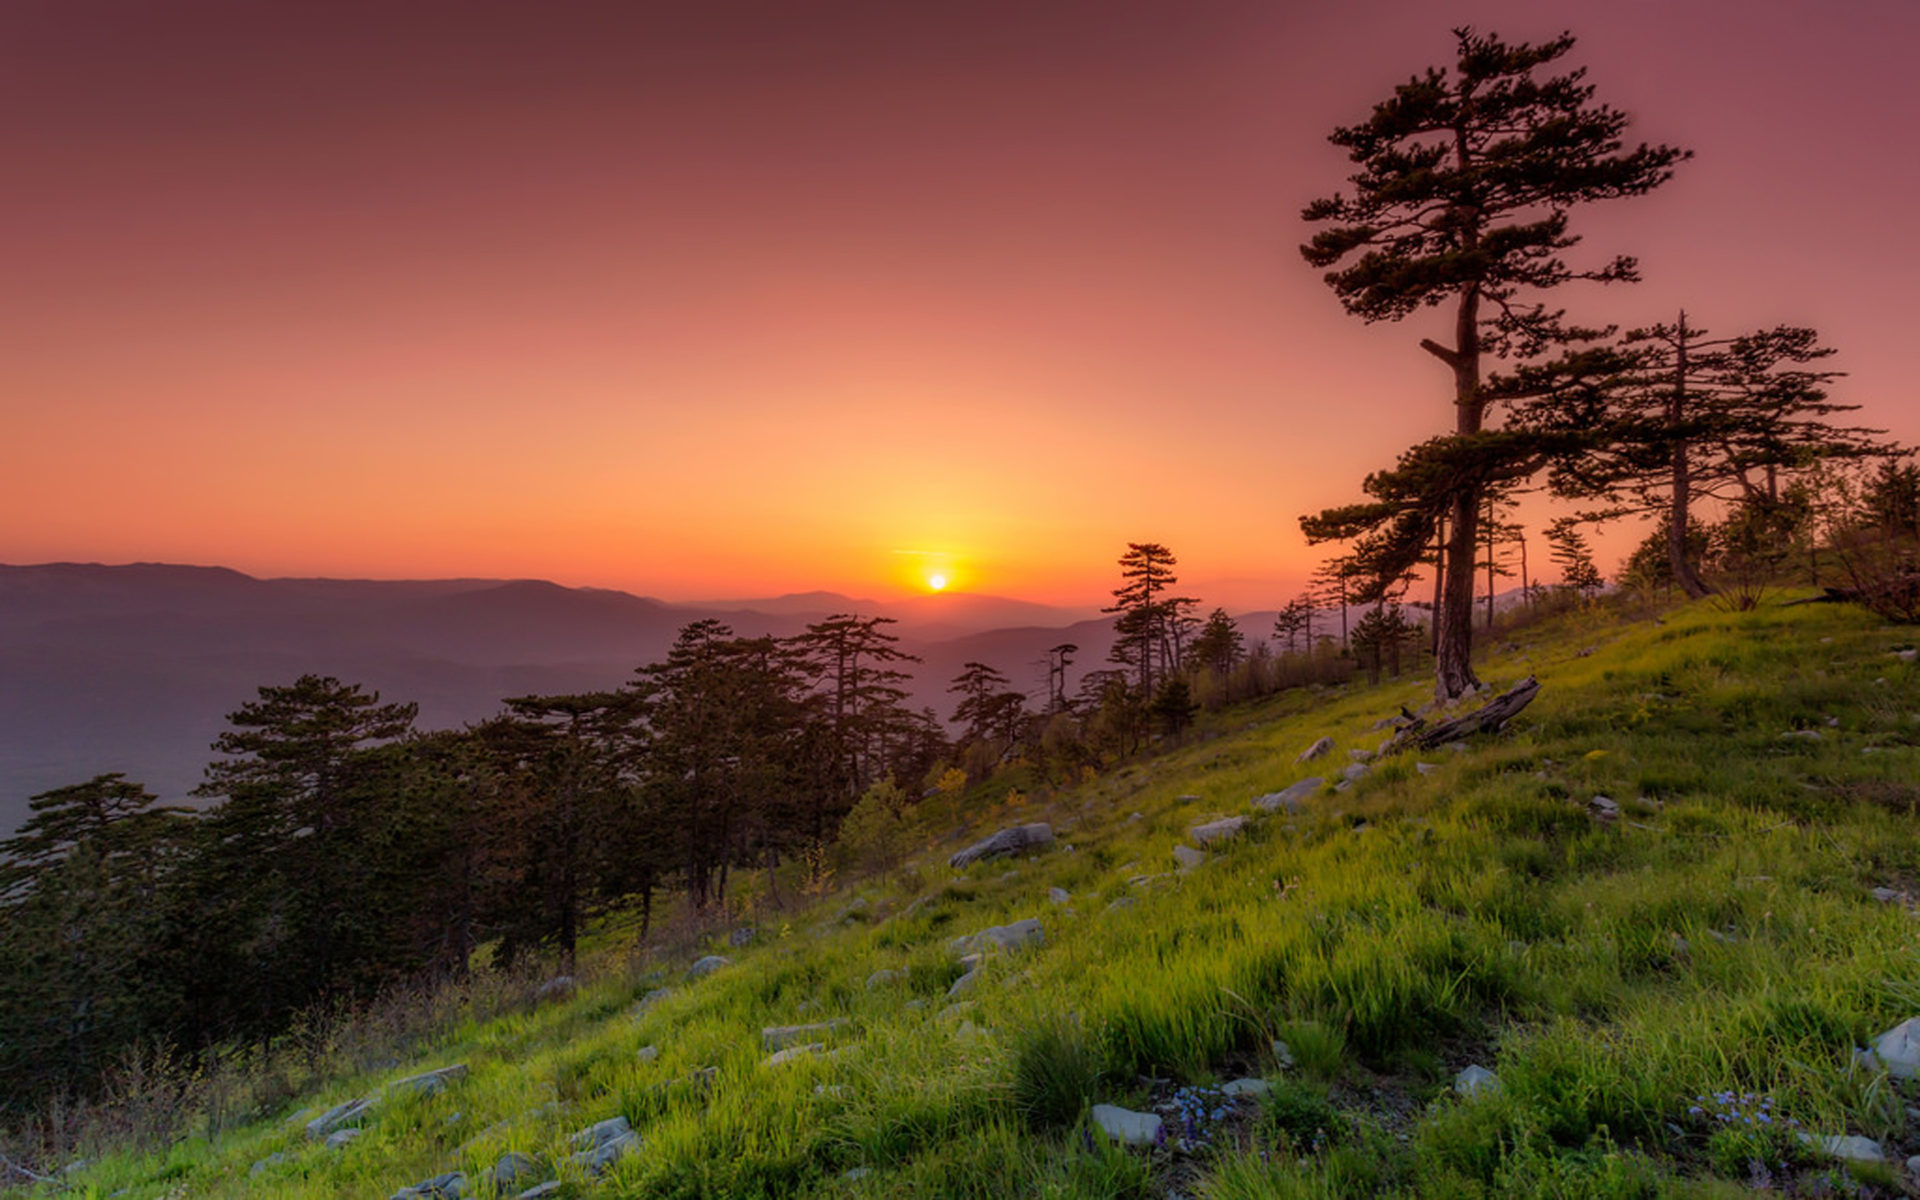 Oregon Wallpaper For Iphone Sunset In Spring May Montenegro Desktop Hd Wallpaper